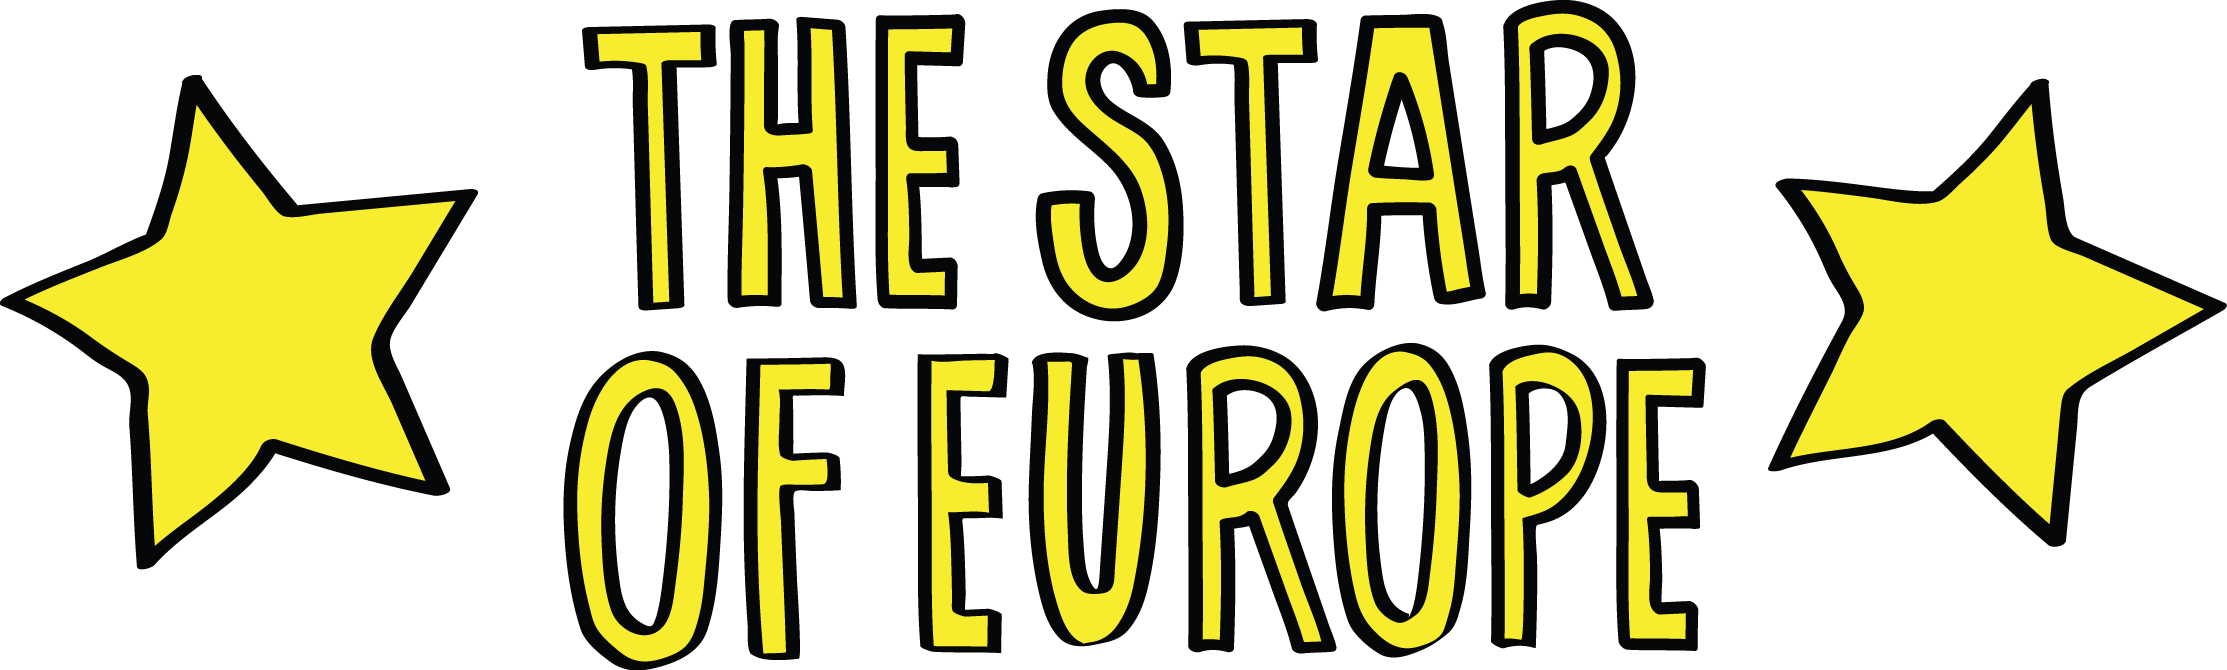 The Star of Europe